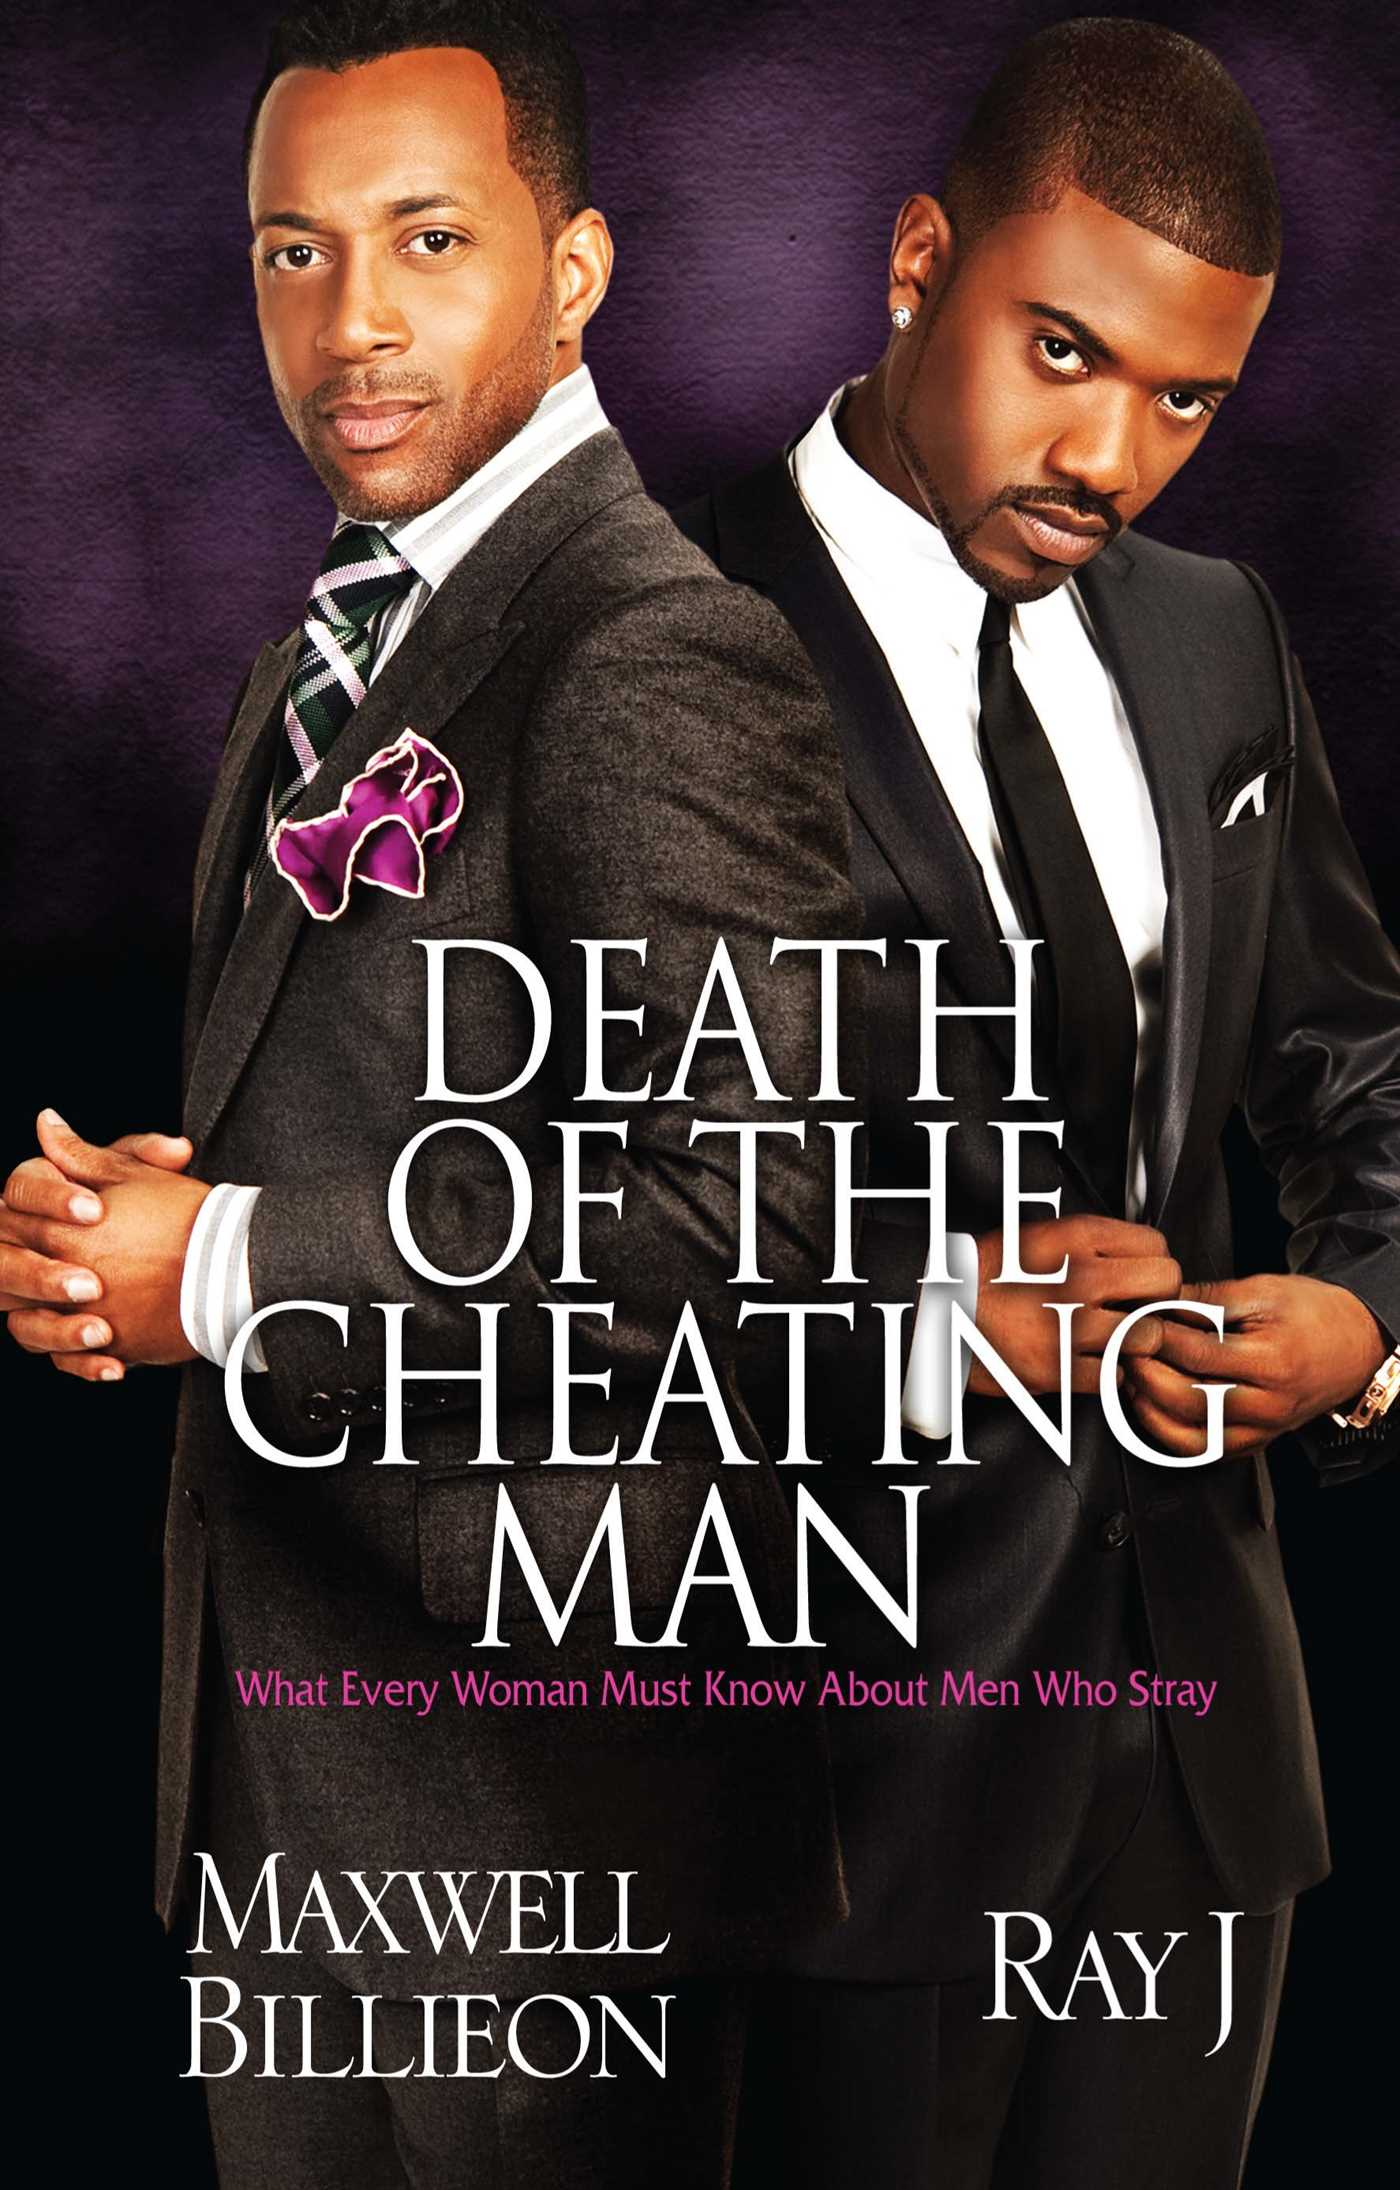 Death of the cheating man 9781451655254 hr